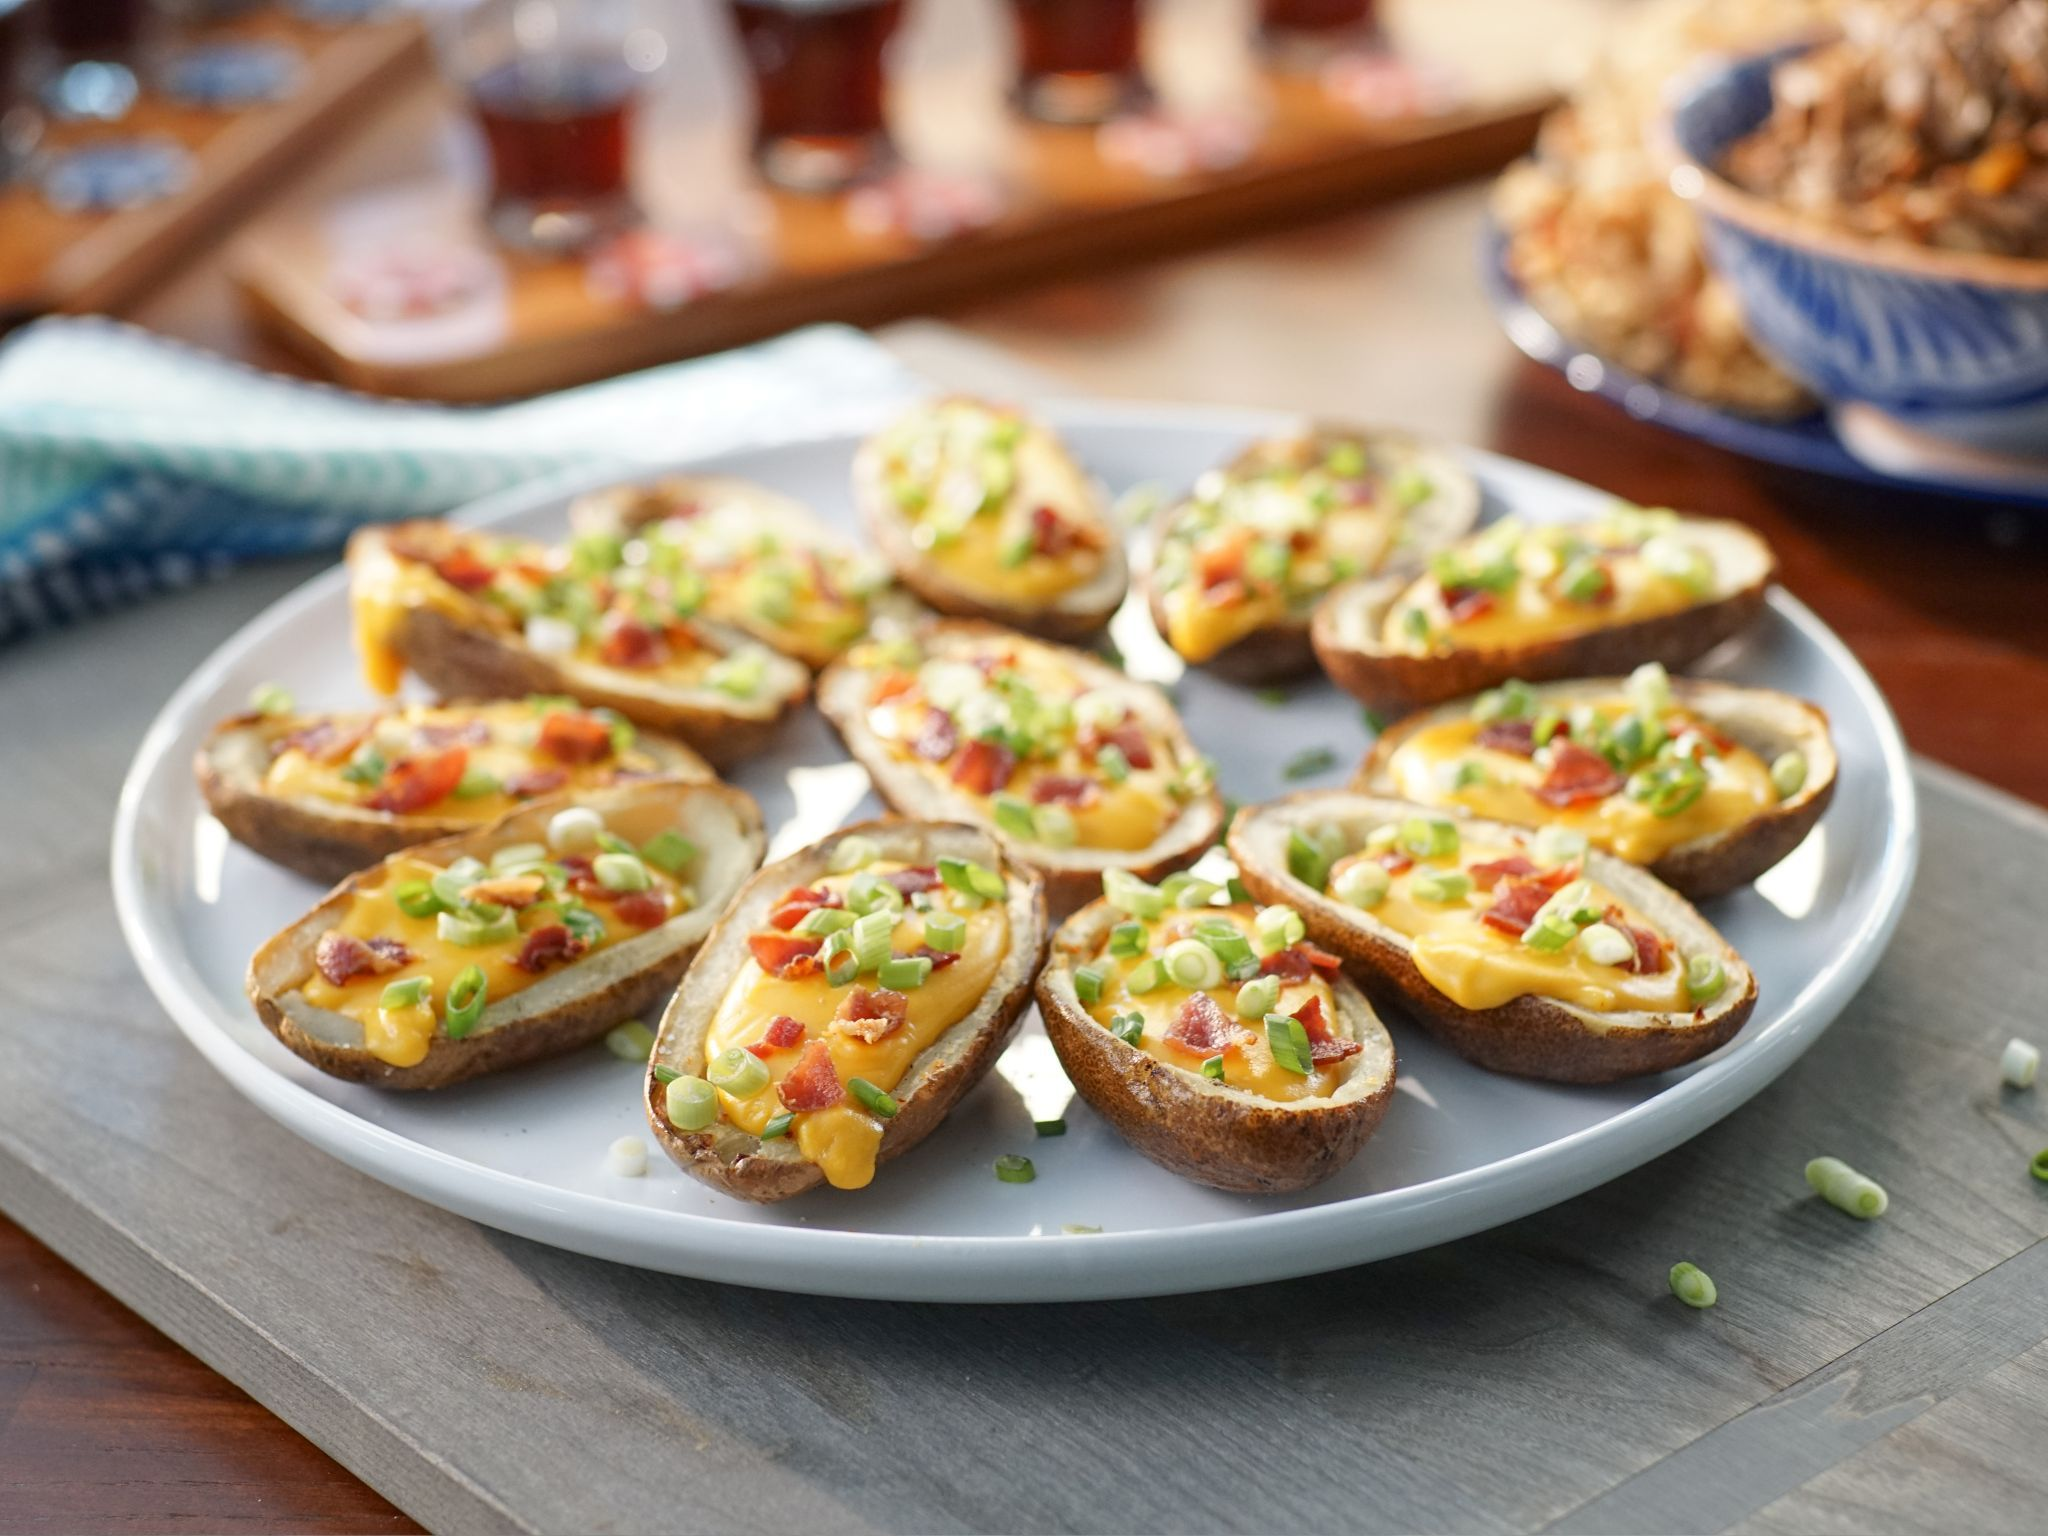 Potato skins with beer cheese recipe valerie bertinelli beer dips potato skins with beer cheese recipe from valerie bertinelli via food network forumfinder Choice Image